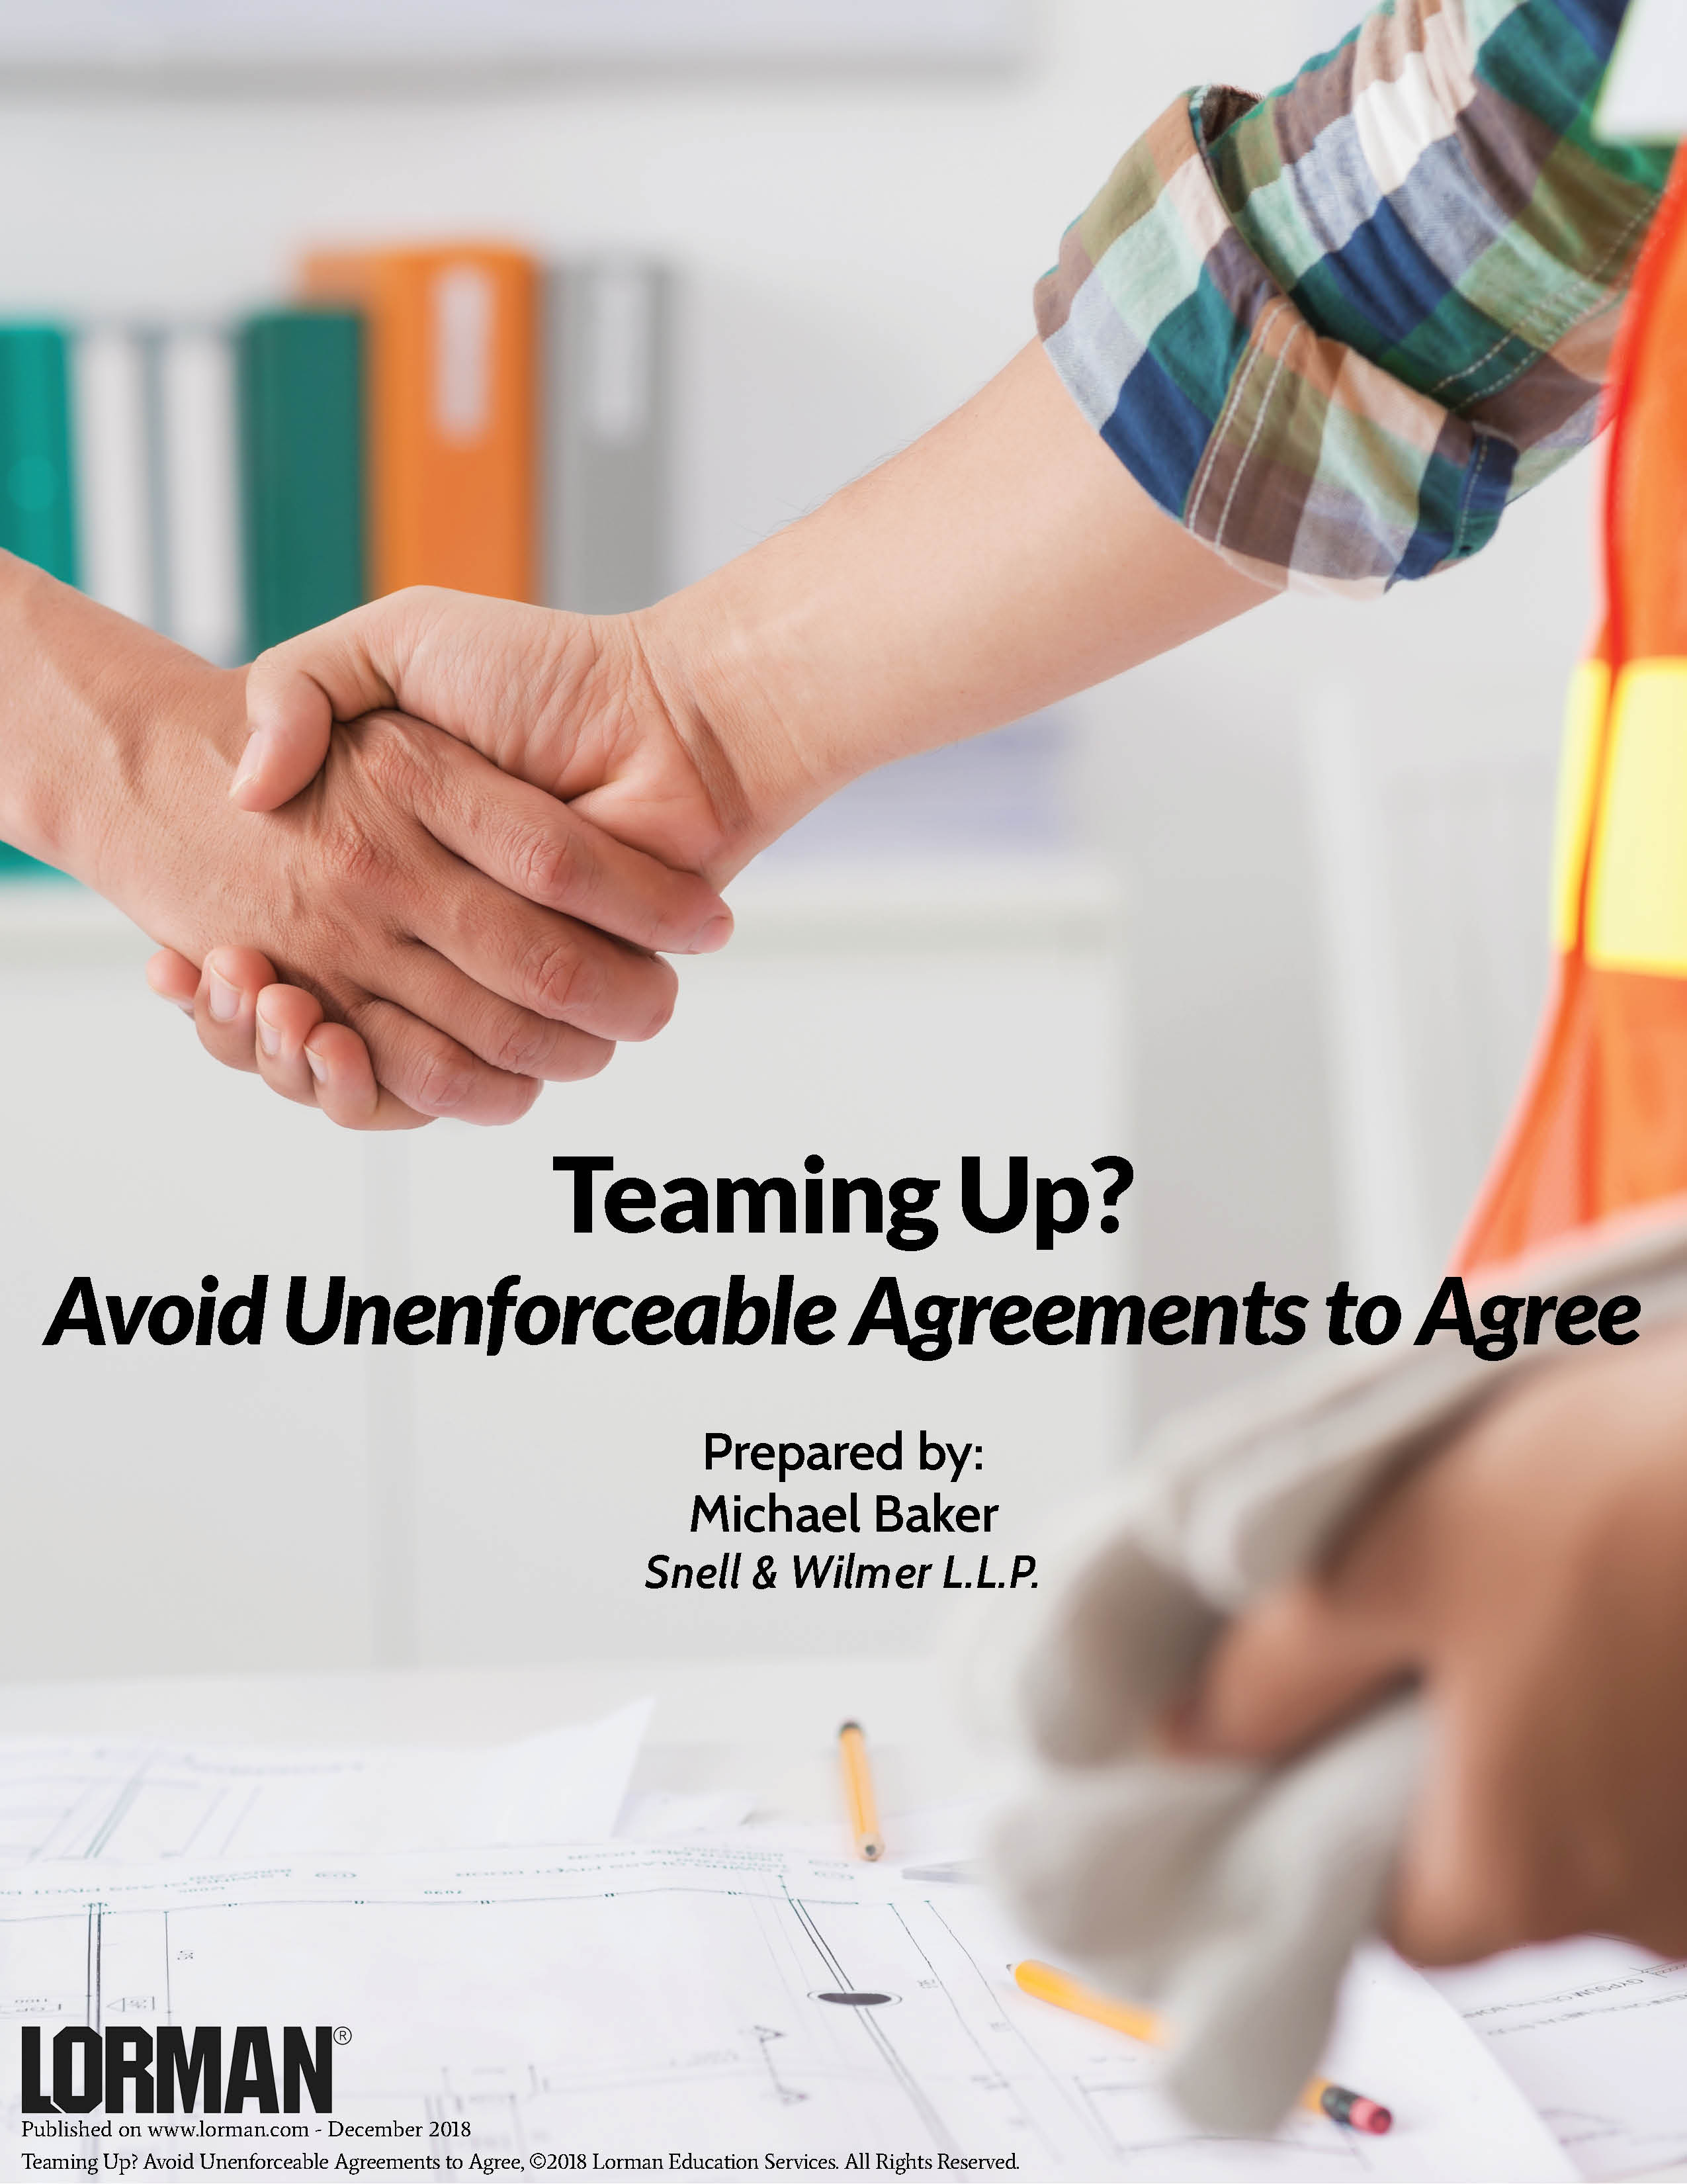 Teaming Up? Avoid Unenforceable Agreements to Agree